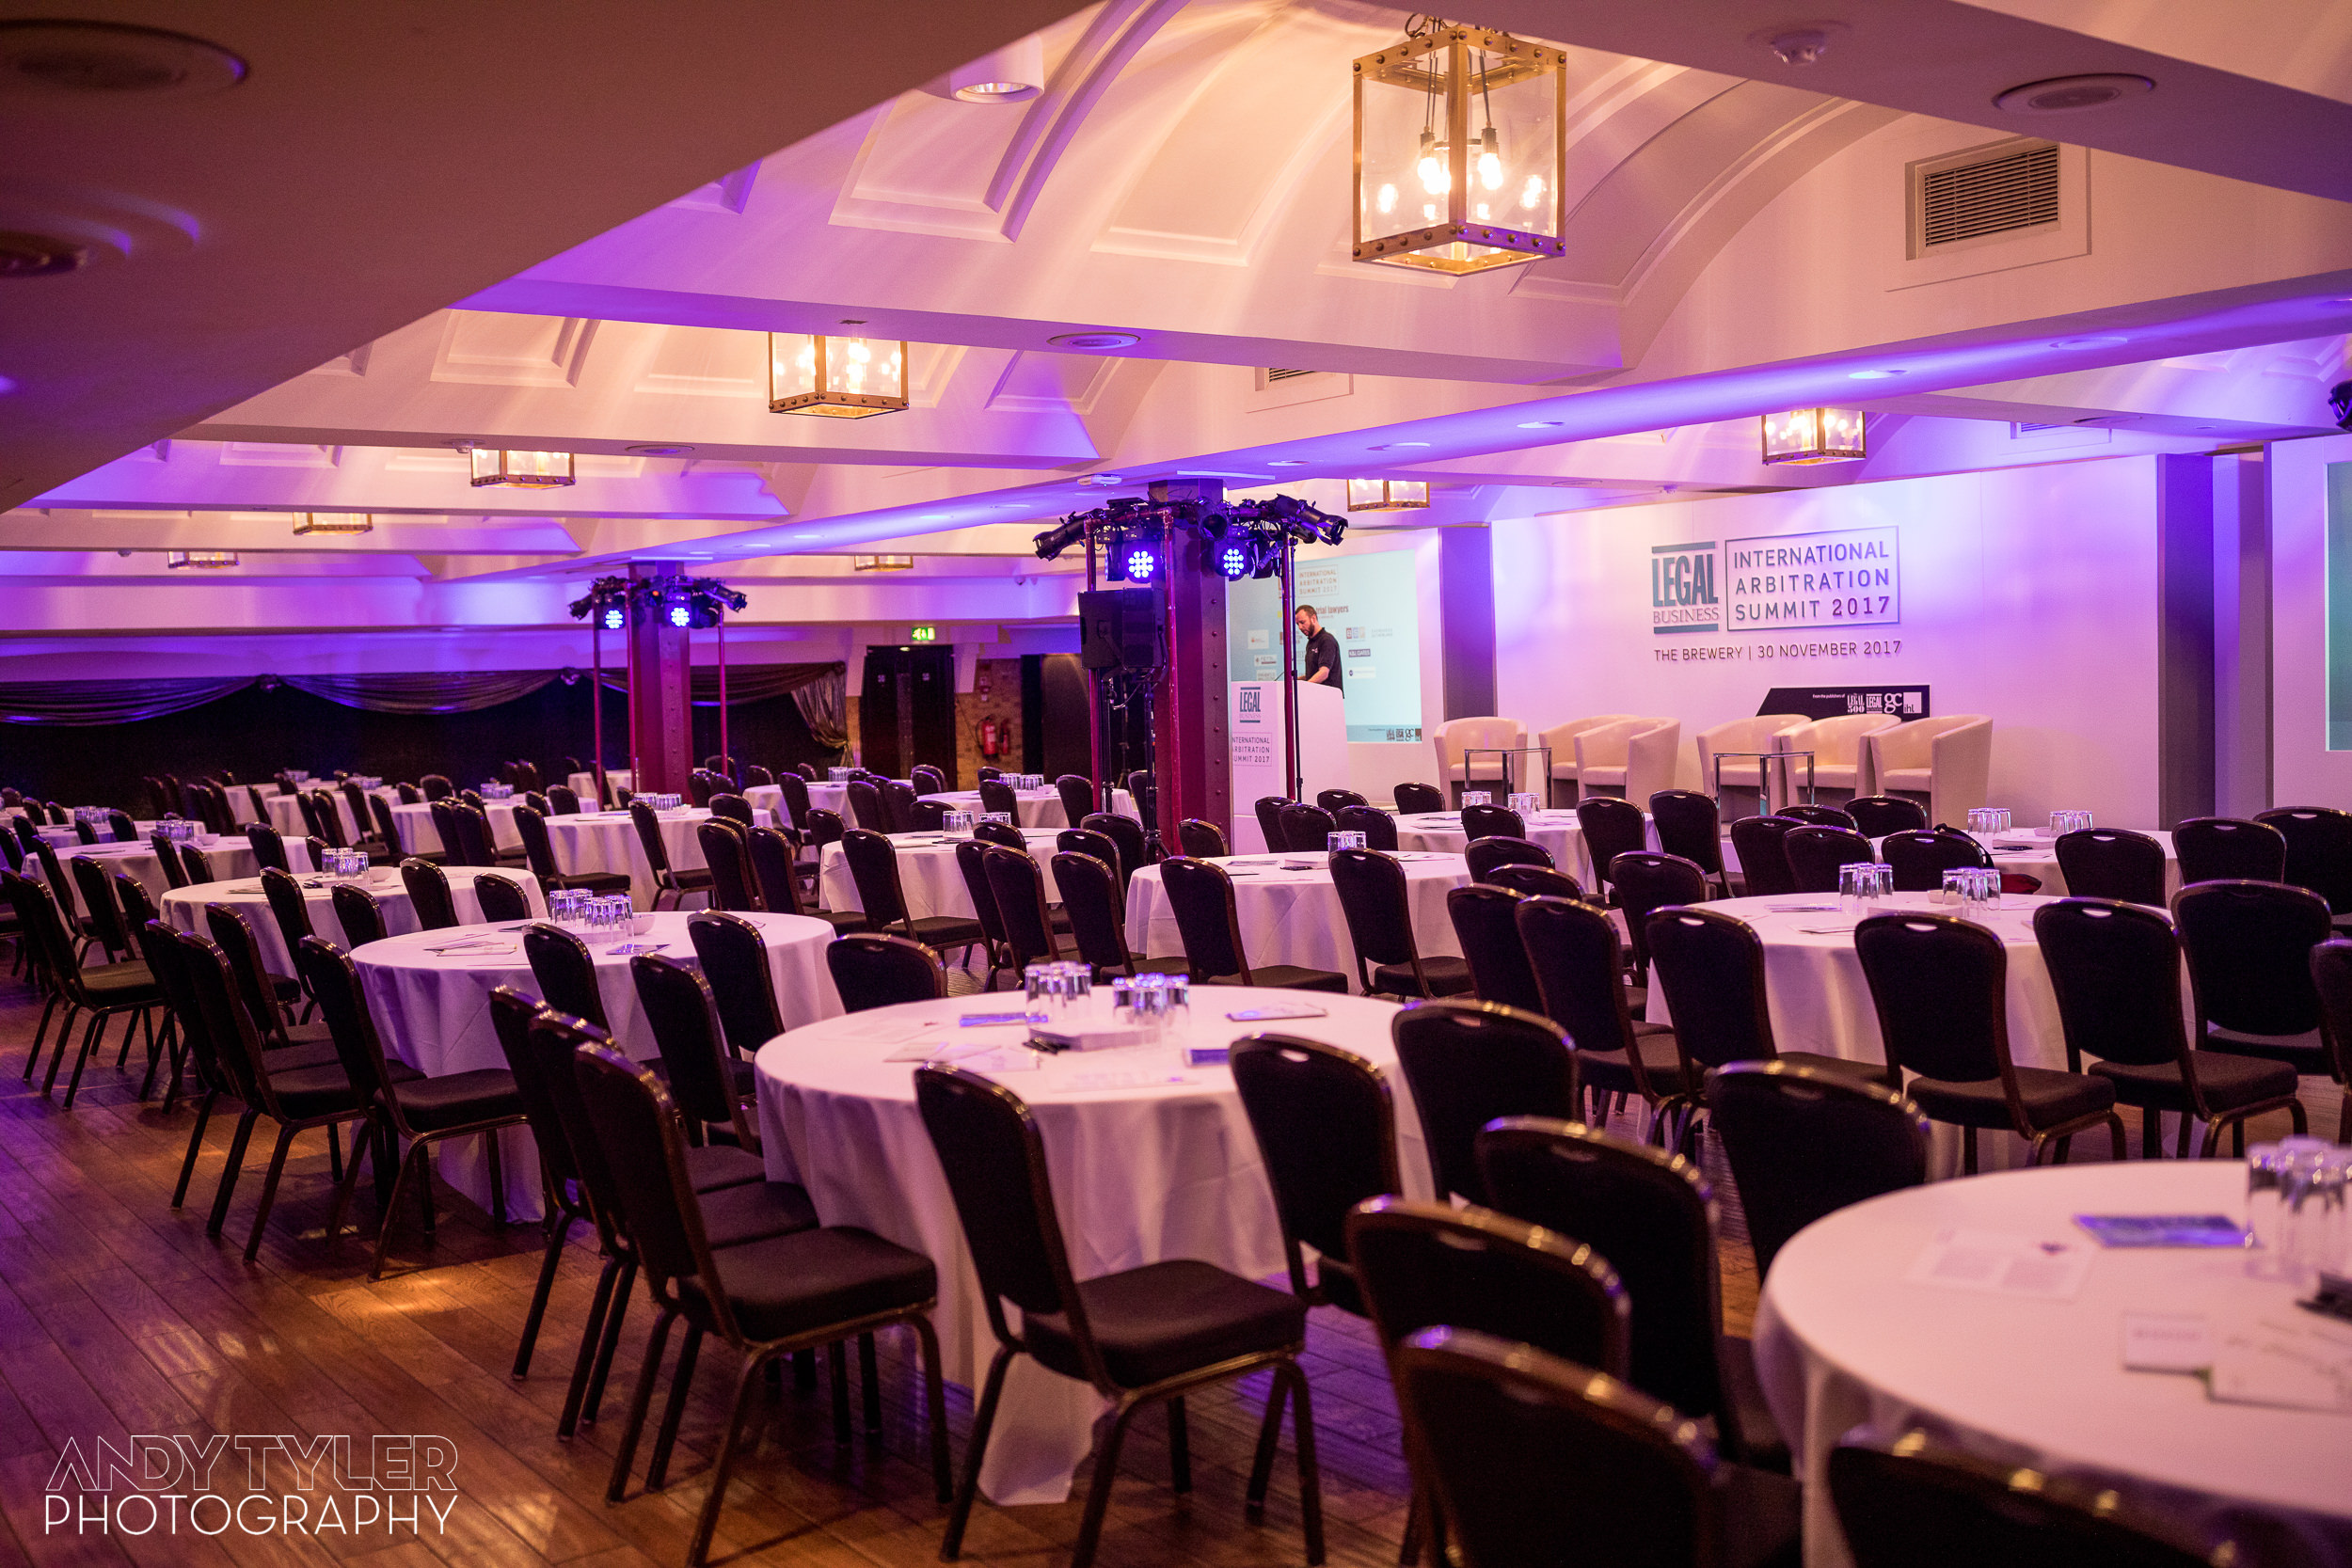 Andy_Tyler_Photography_Business_Conference_003_Andy_Tyler_Photography_016_5DB_0050.jpg